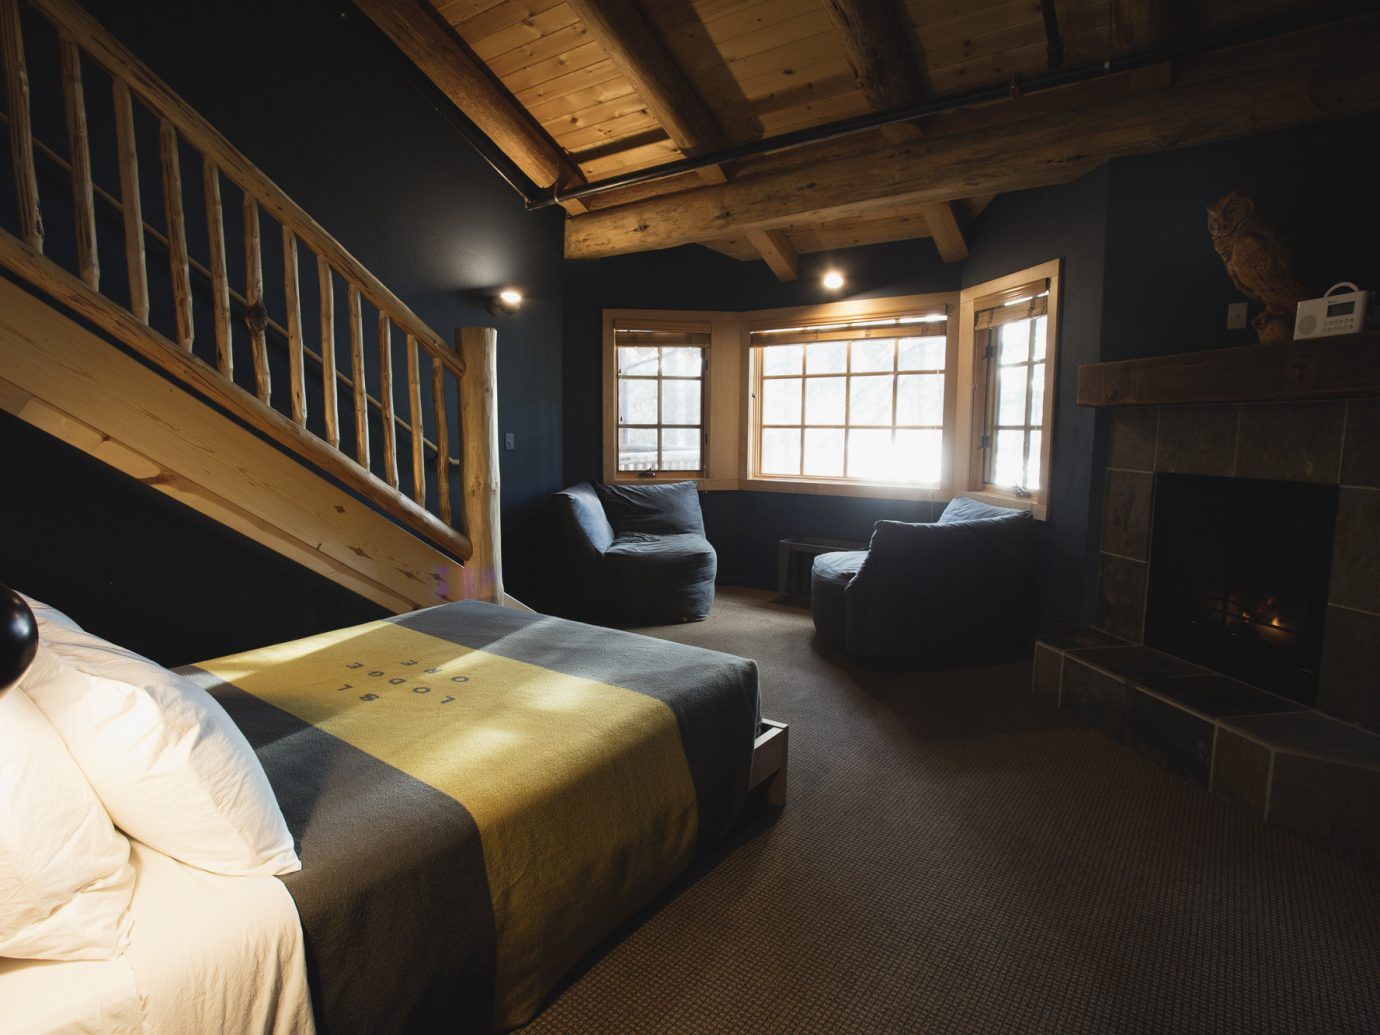 Boutique Hotels Fall Travel Hotels Outdoors + Adventure indoor room floor window Architecture ceiling interior design wood house furniture home Bedroom